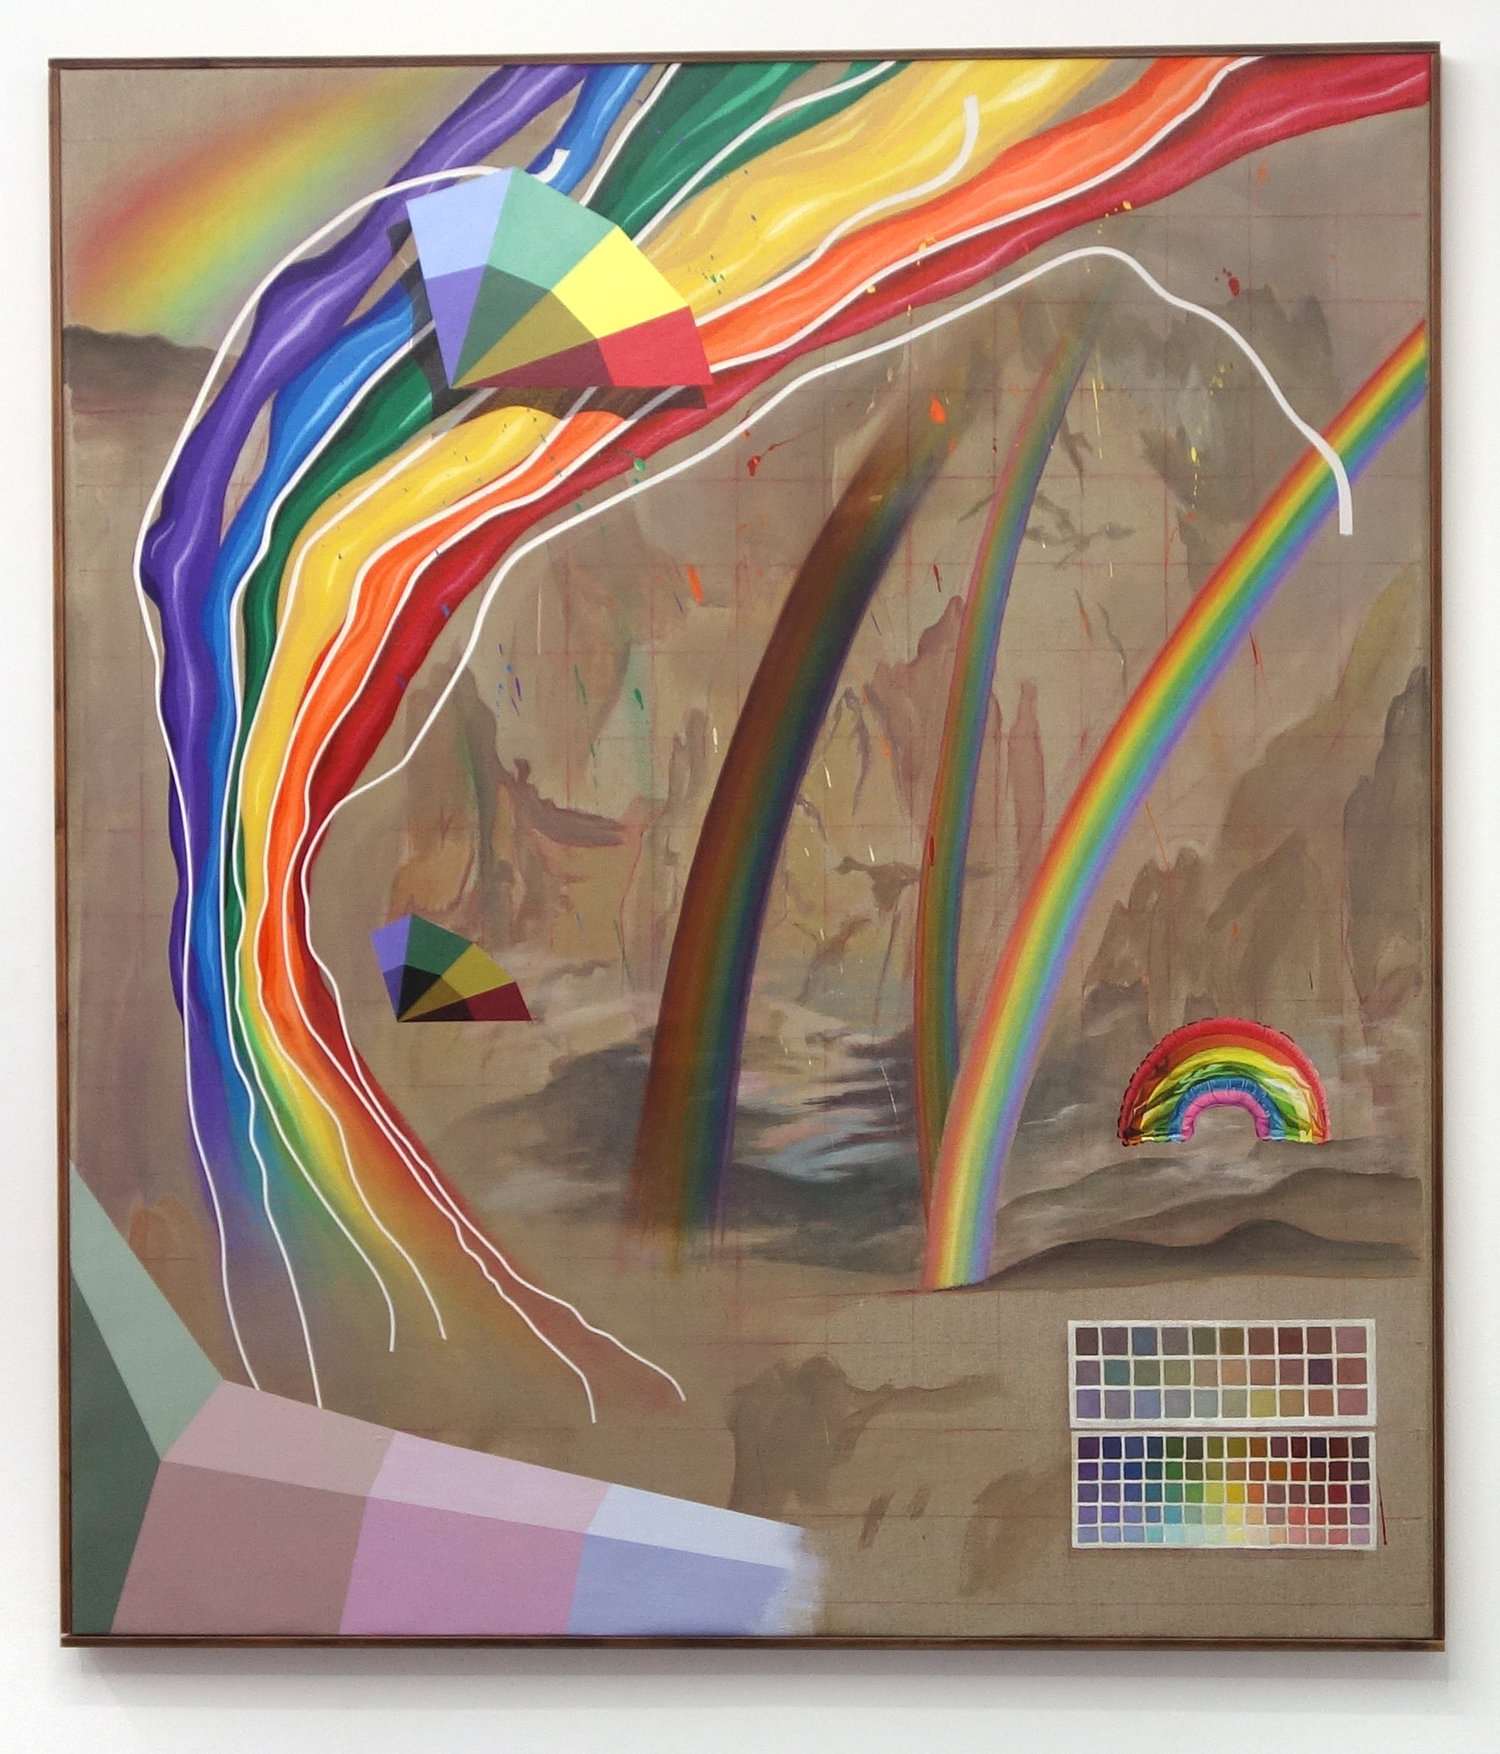 """Various Spectrums (Crockett Johnson's """"Homothetic Triangles,"""" Milton Bradley's """"The Bradley Educational Colored Papers,"""" and Ken Bushe's """"Oil Painting of a Rainbow in the Landscape at Sheriffmuir"""") over Thomas Moran's """"Rainbow over the Grand Canyon of the Yellowstone,""""   oil and acrylic on linen, 2017"""